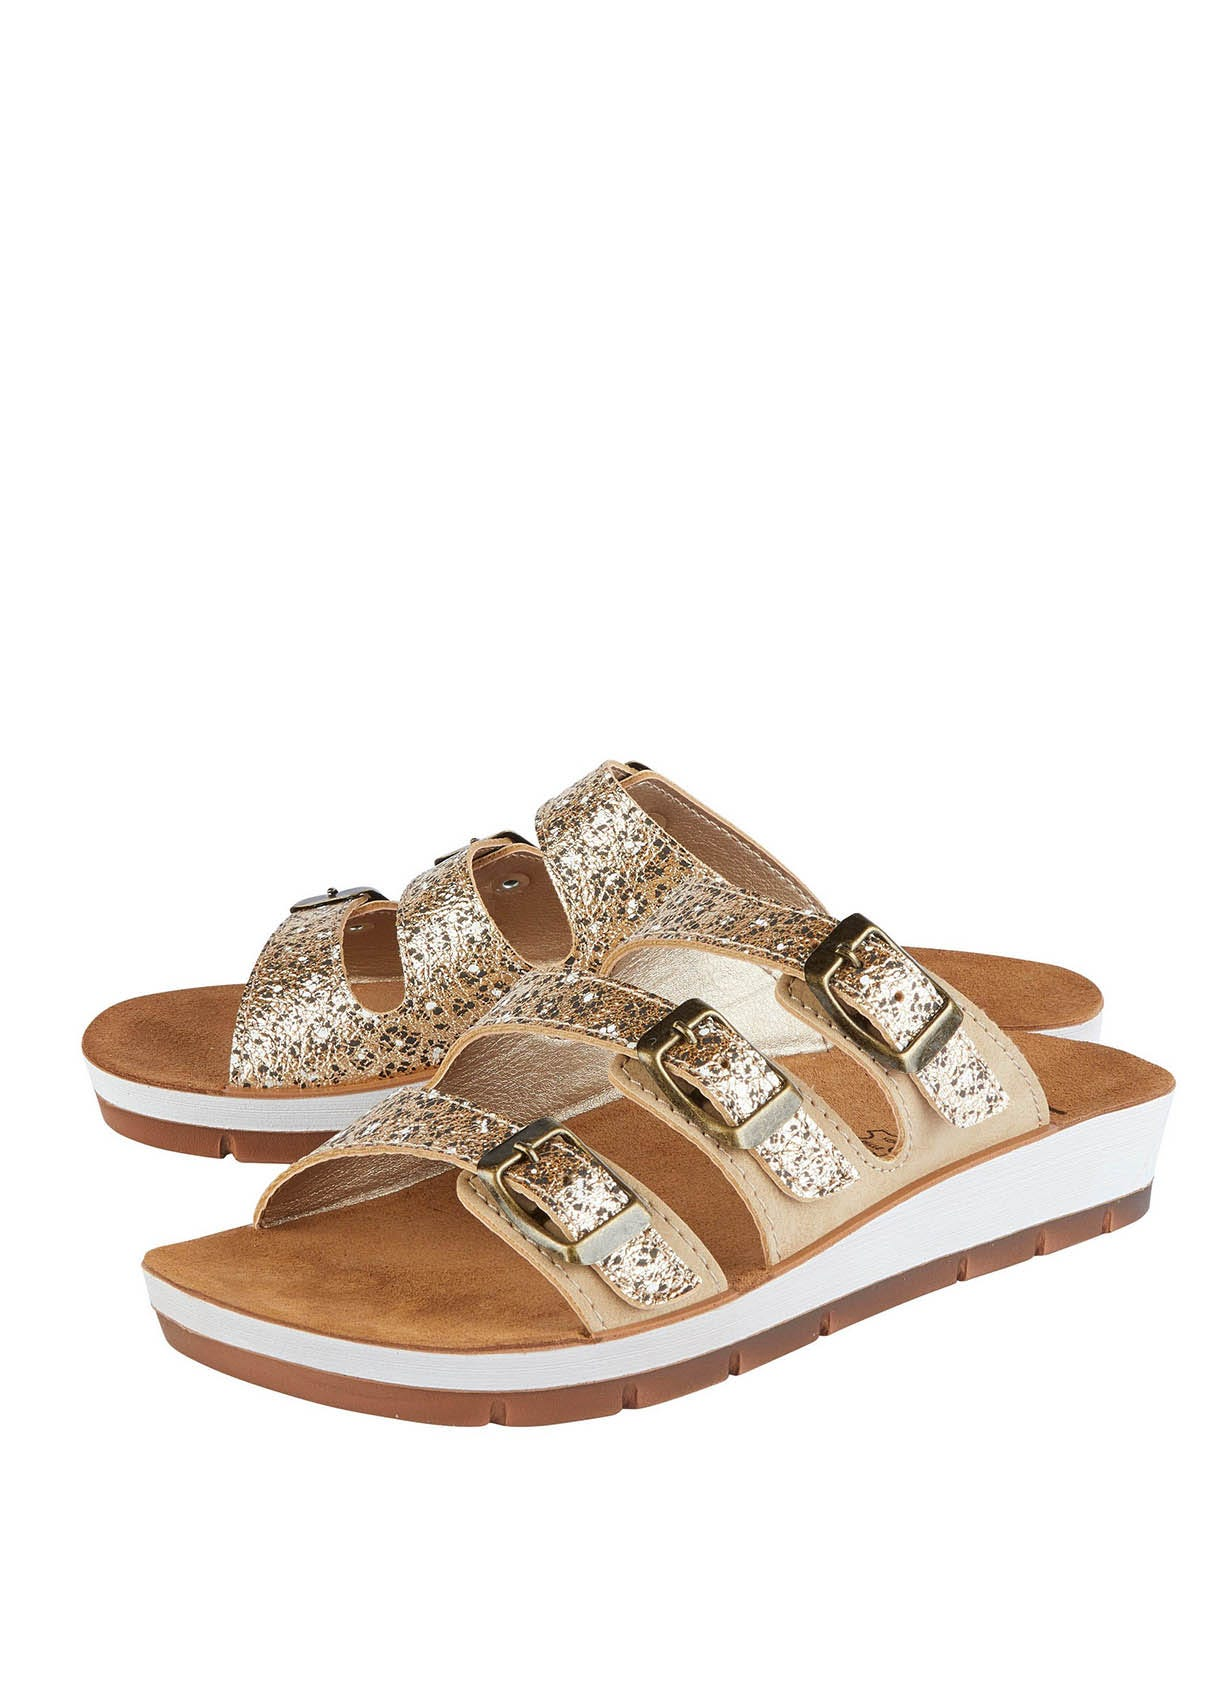 Lotus Turin Mule Sandals in Gold and